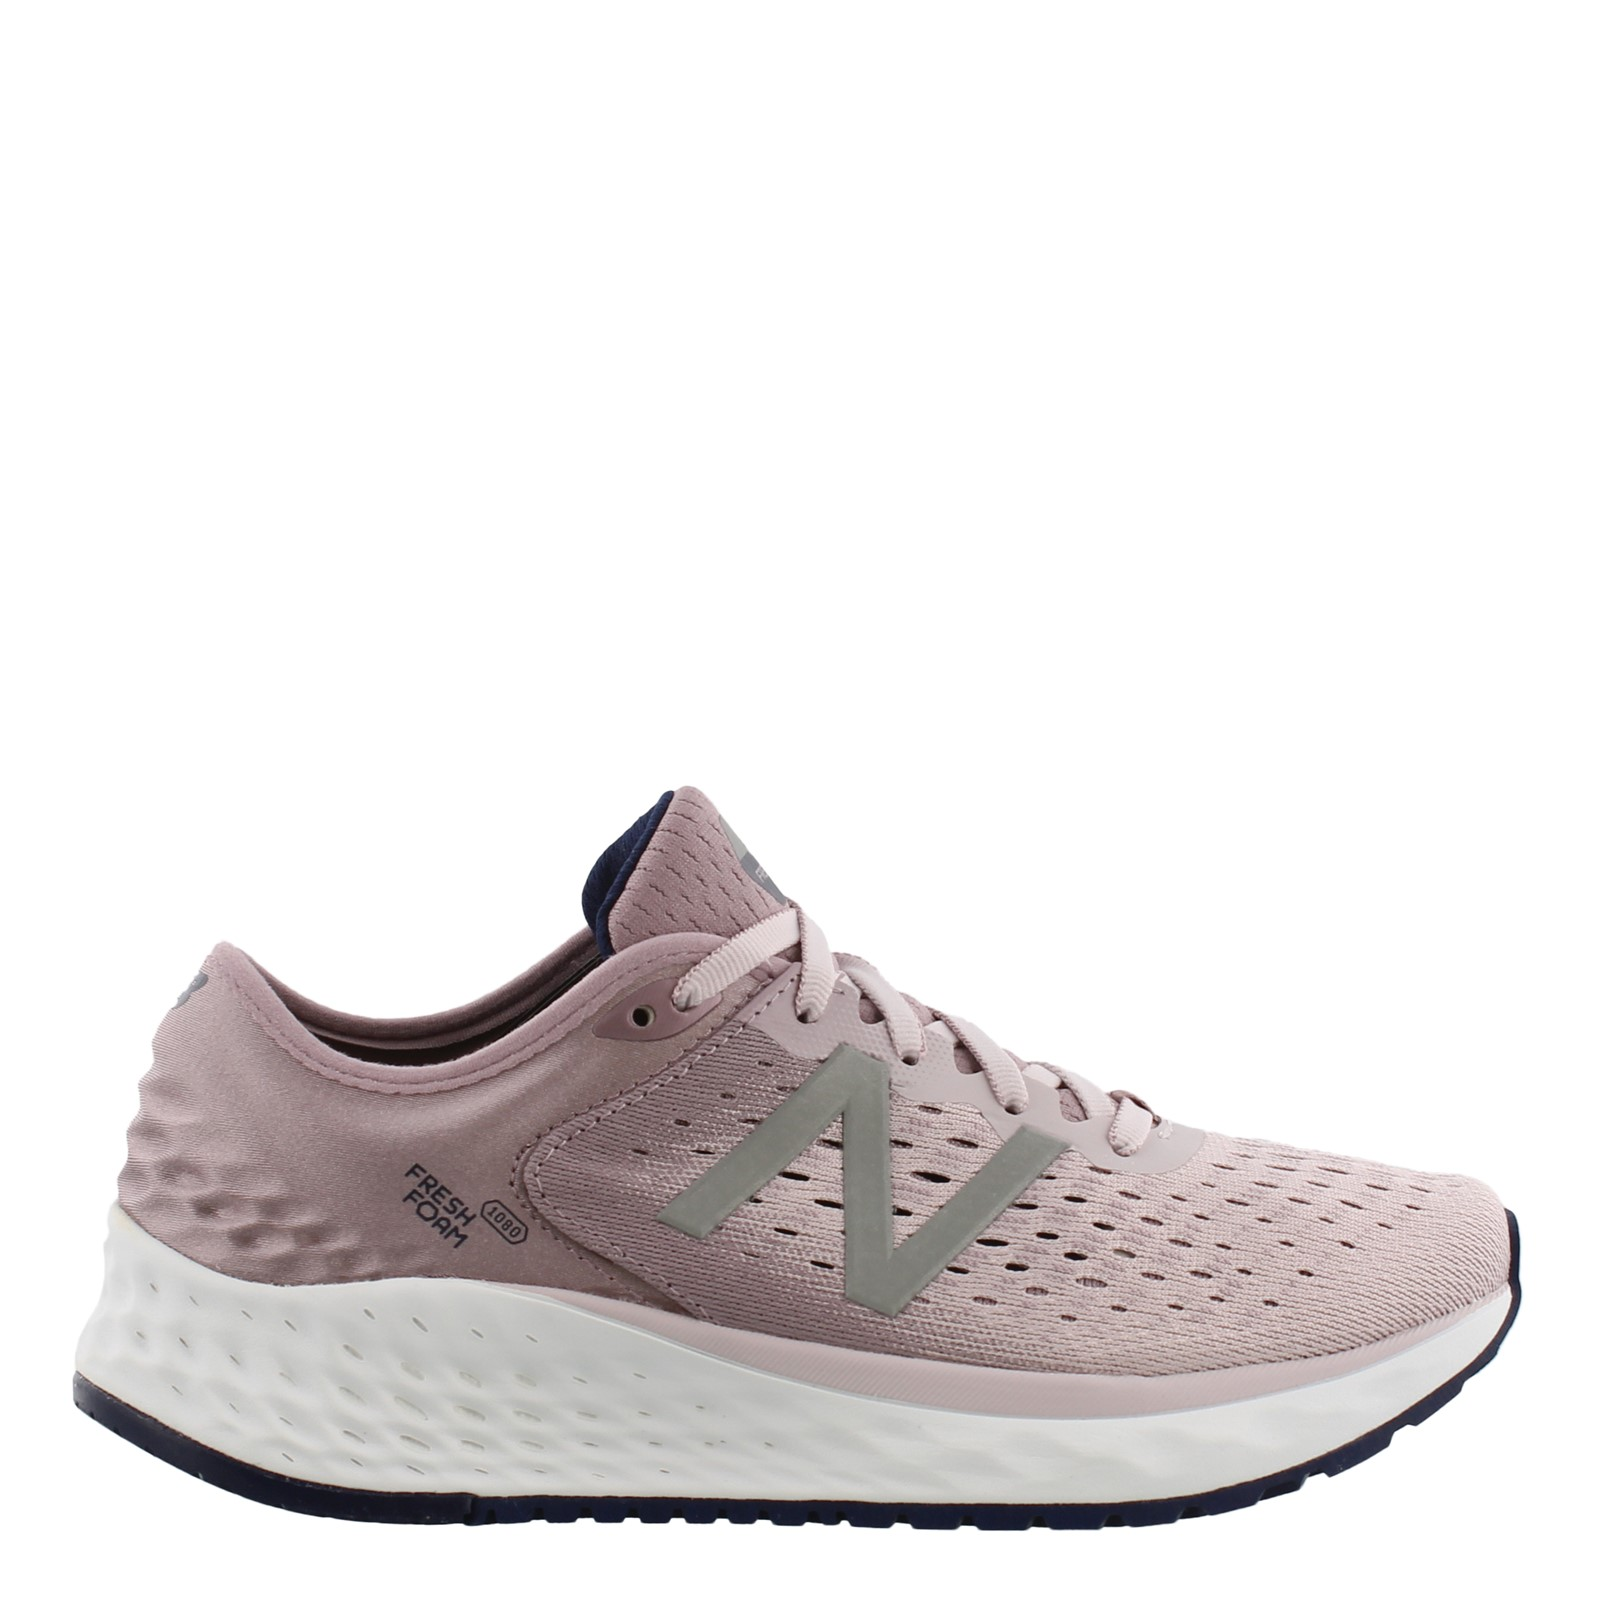 Women's New Balance, 1080v9 Running Sneakers